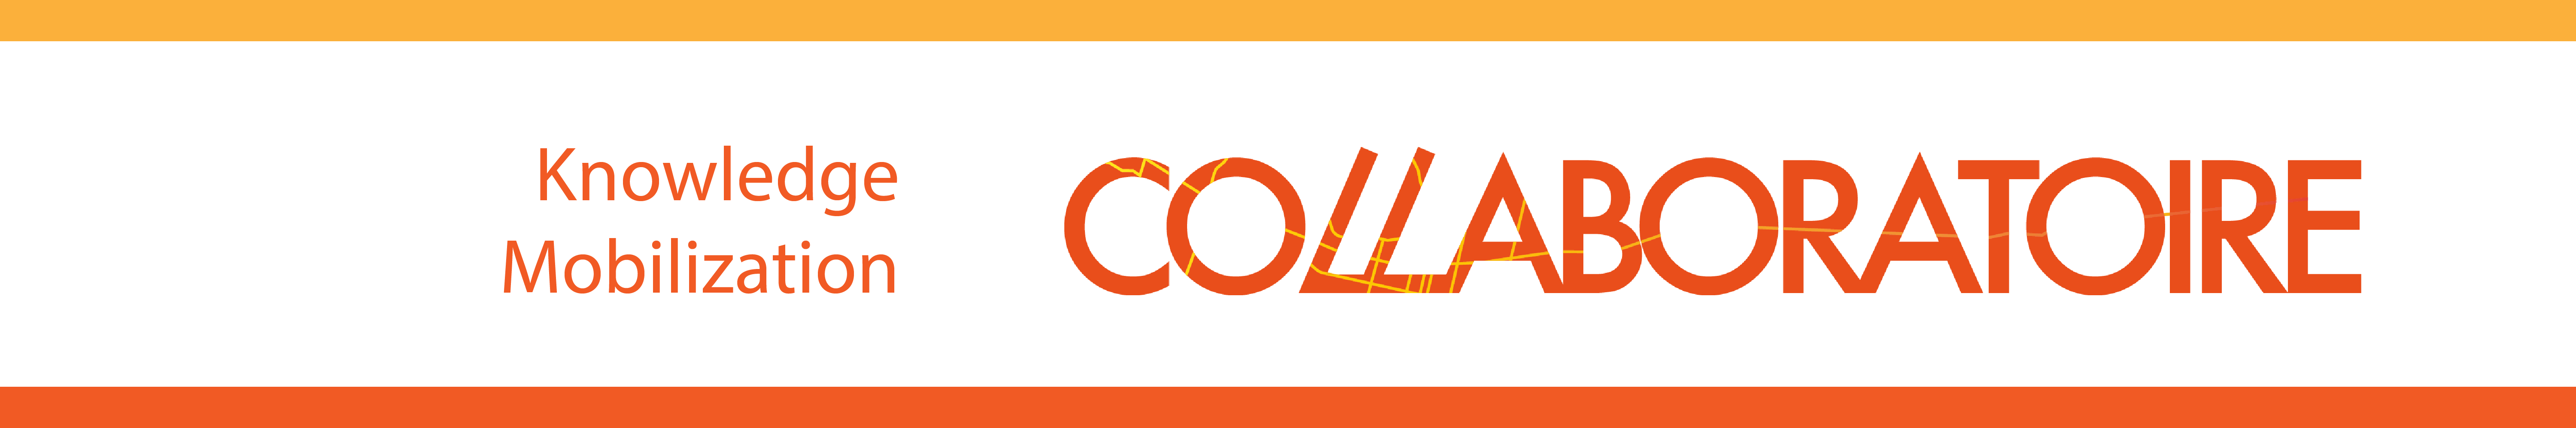 New-CoLLaboratoire-Banner.png